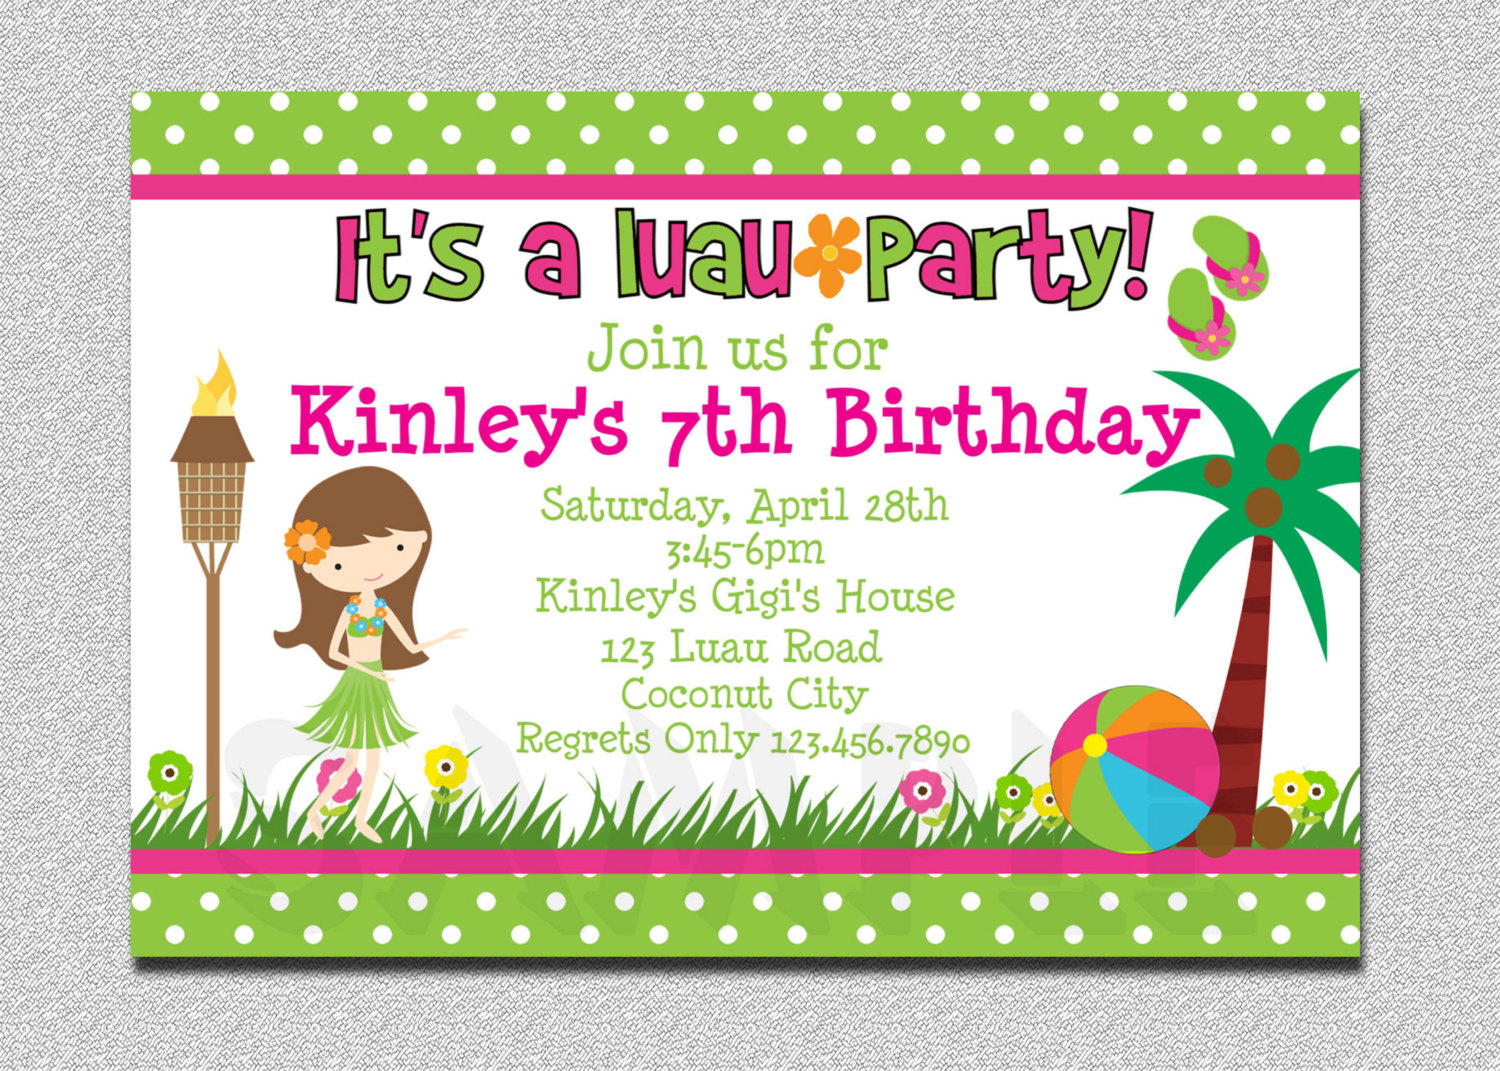 20 luau birthday invitations designs birthday party invitations luau birthday invitations stopboris Gallery